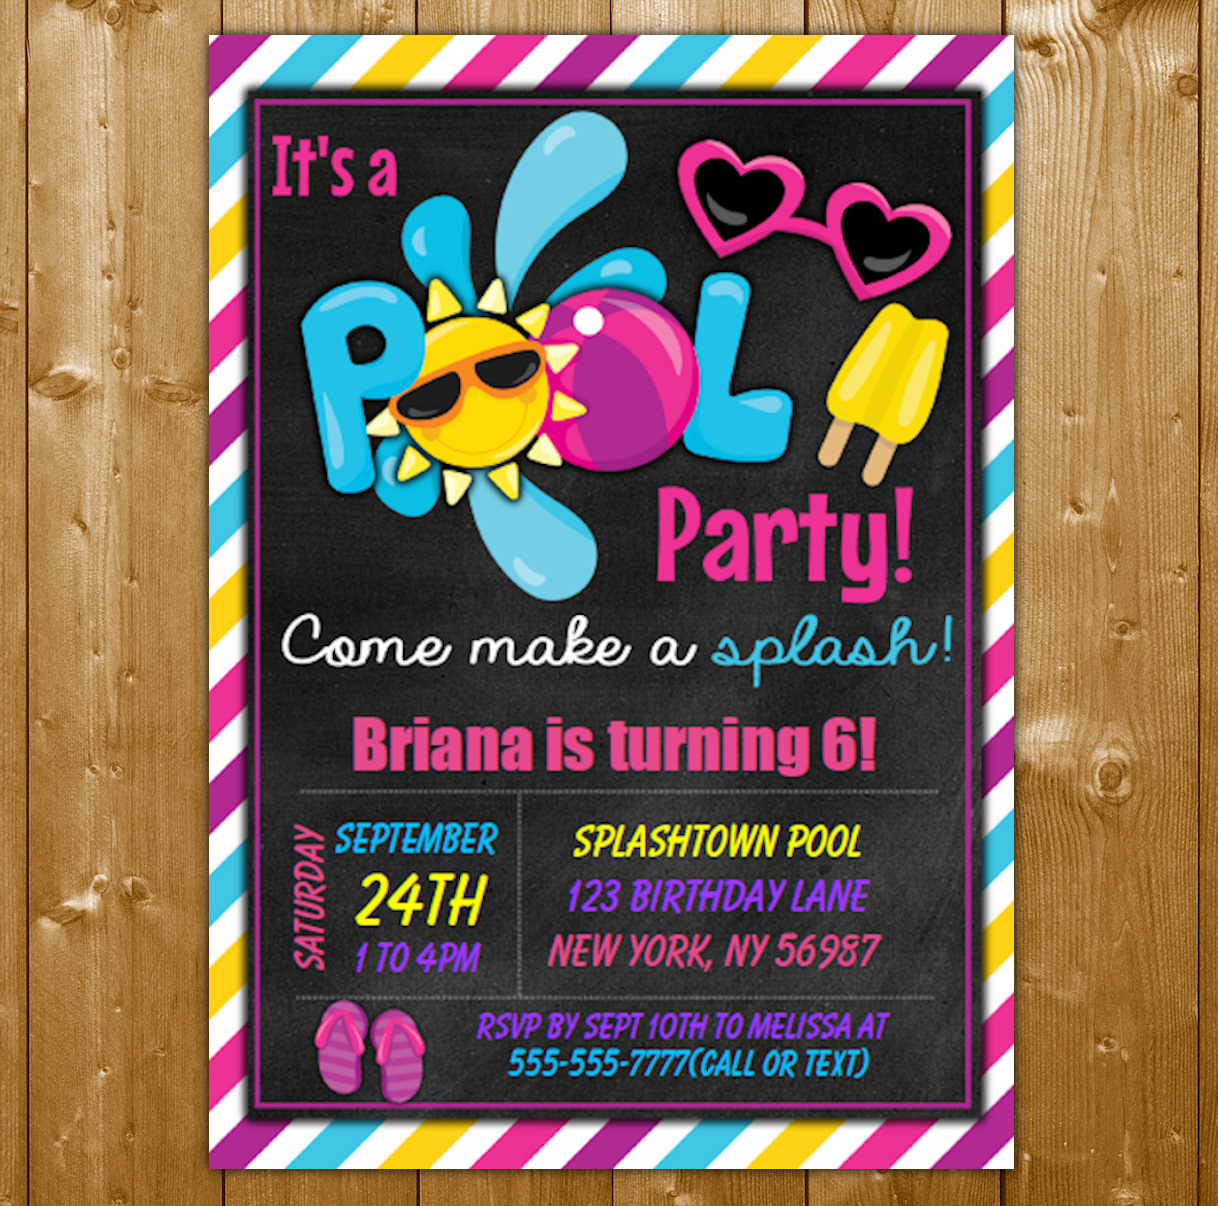 Giurl Pool Party Invitation Cute